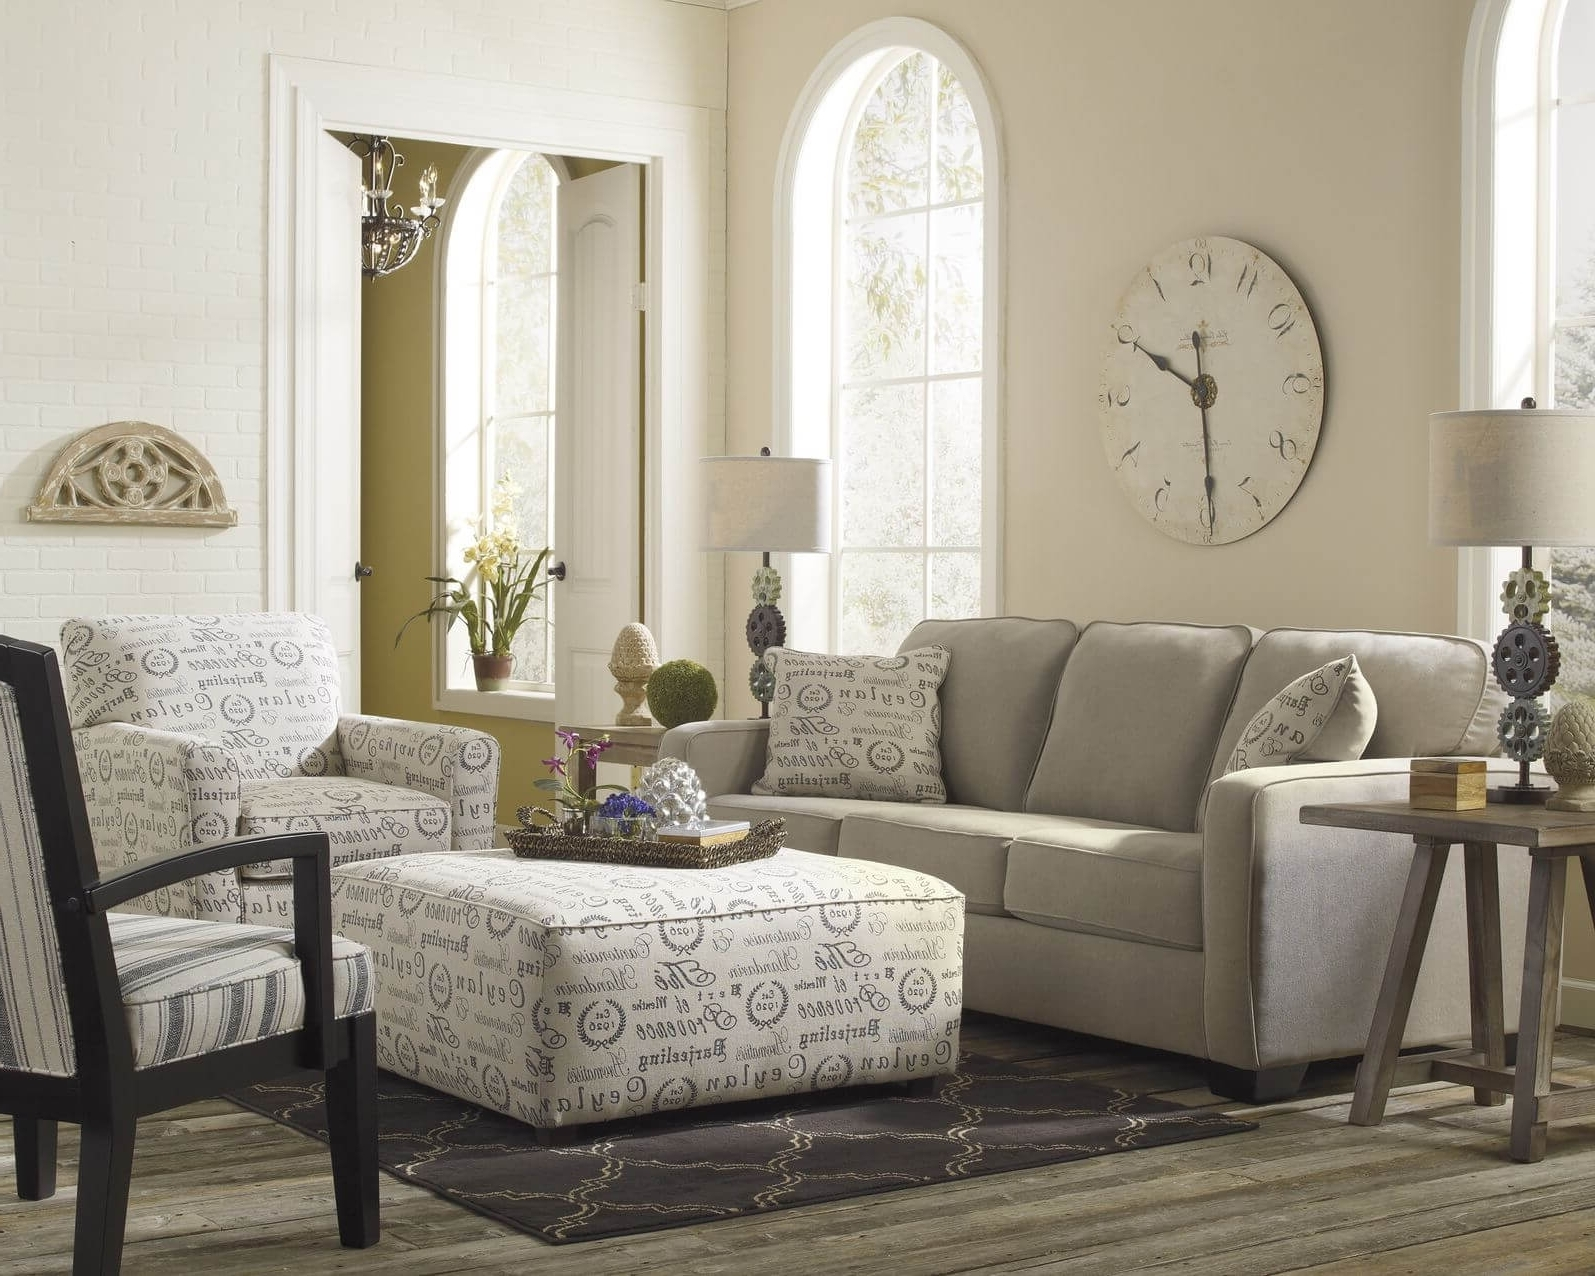 50 Beautiful Living Rooms With Ottoman Coffee Tables Regarding Current Sofas With Ottoman (View 11 of 15)